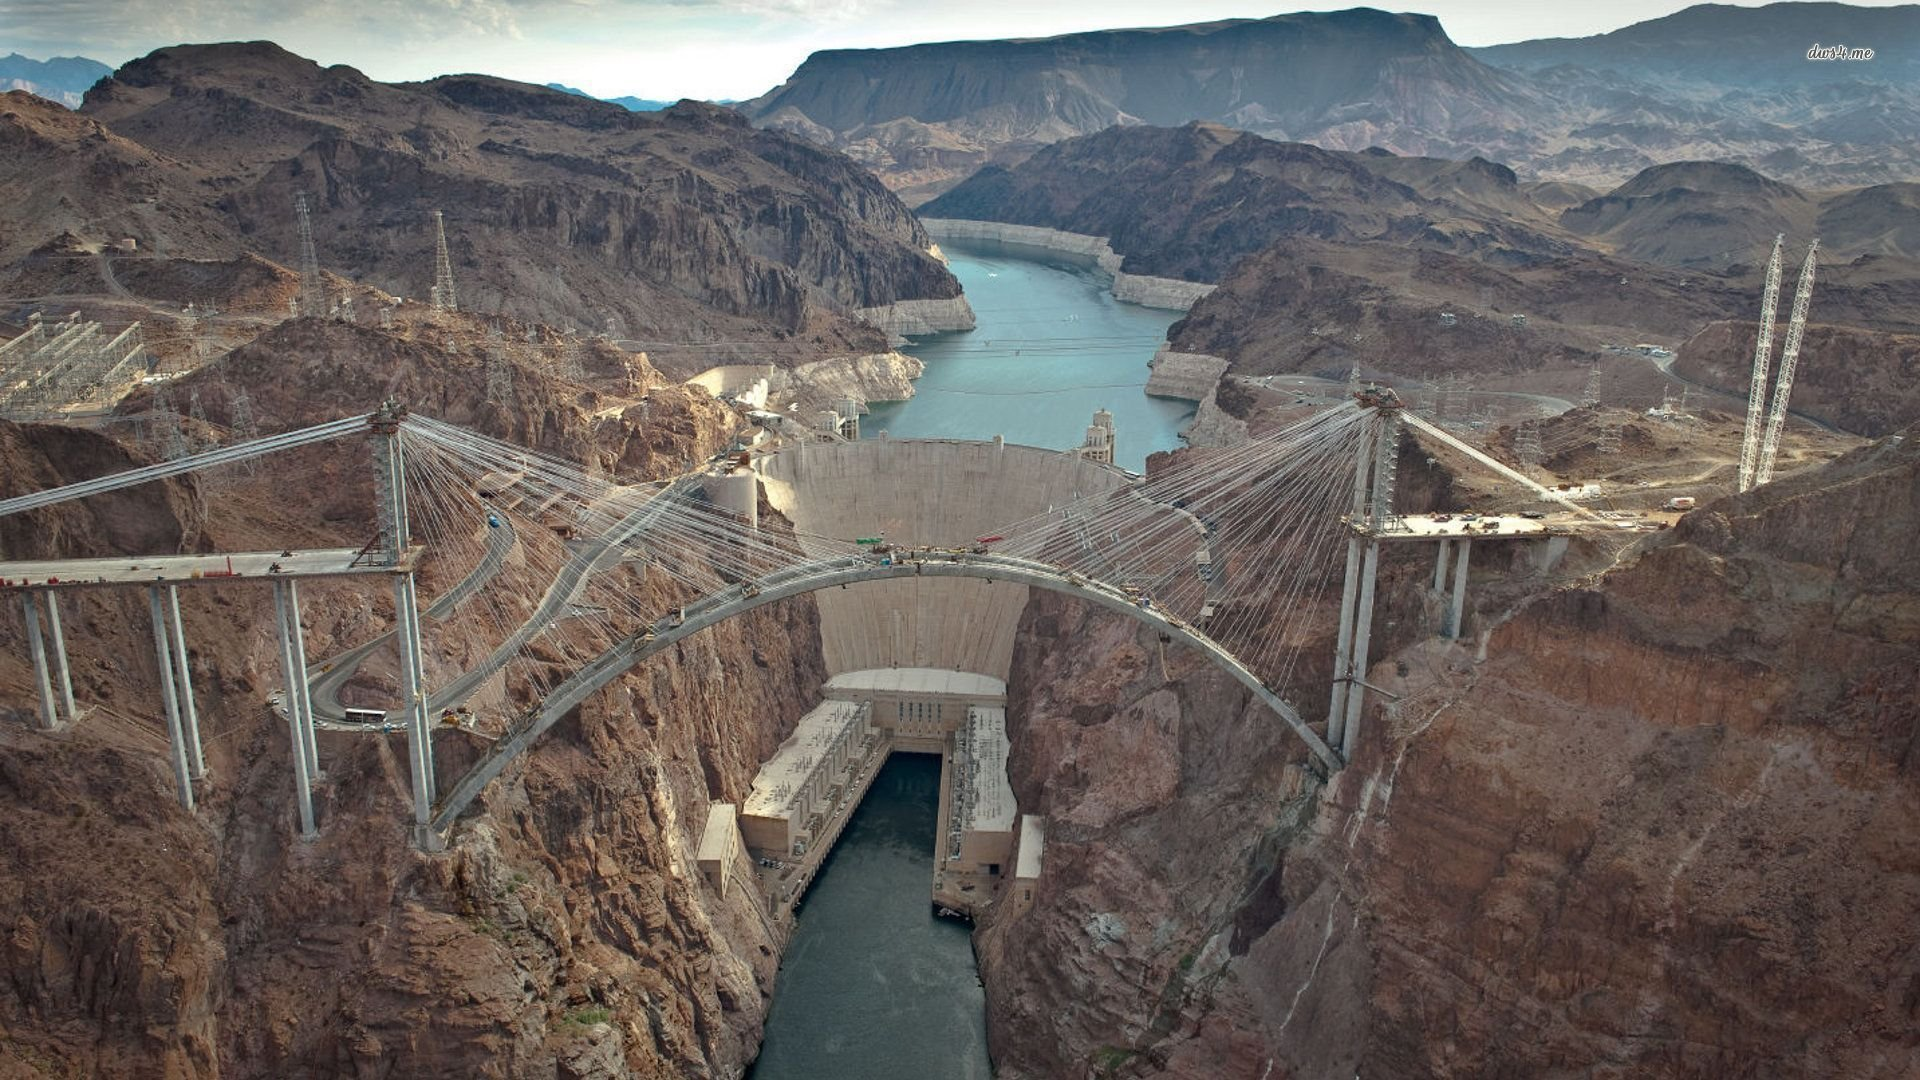 Hoover Dam Wallpaper 3   1920 X 1080 stmednet 1920x1080